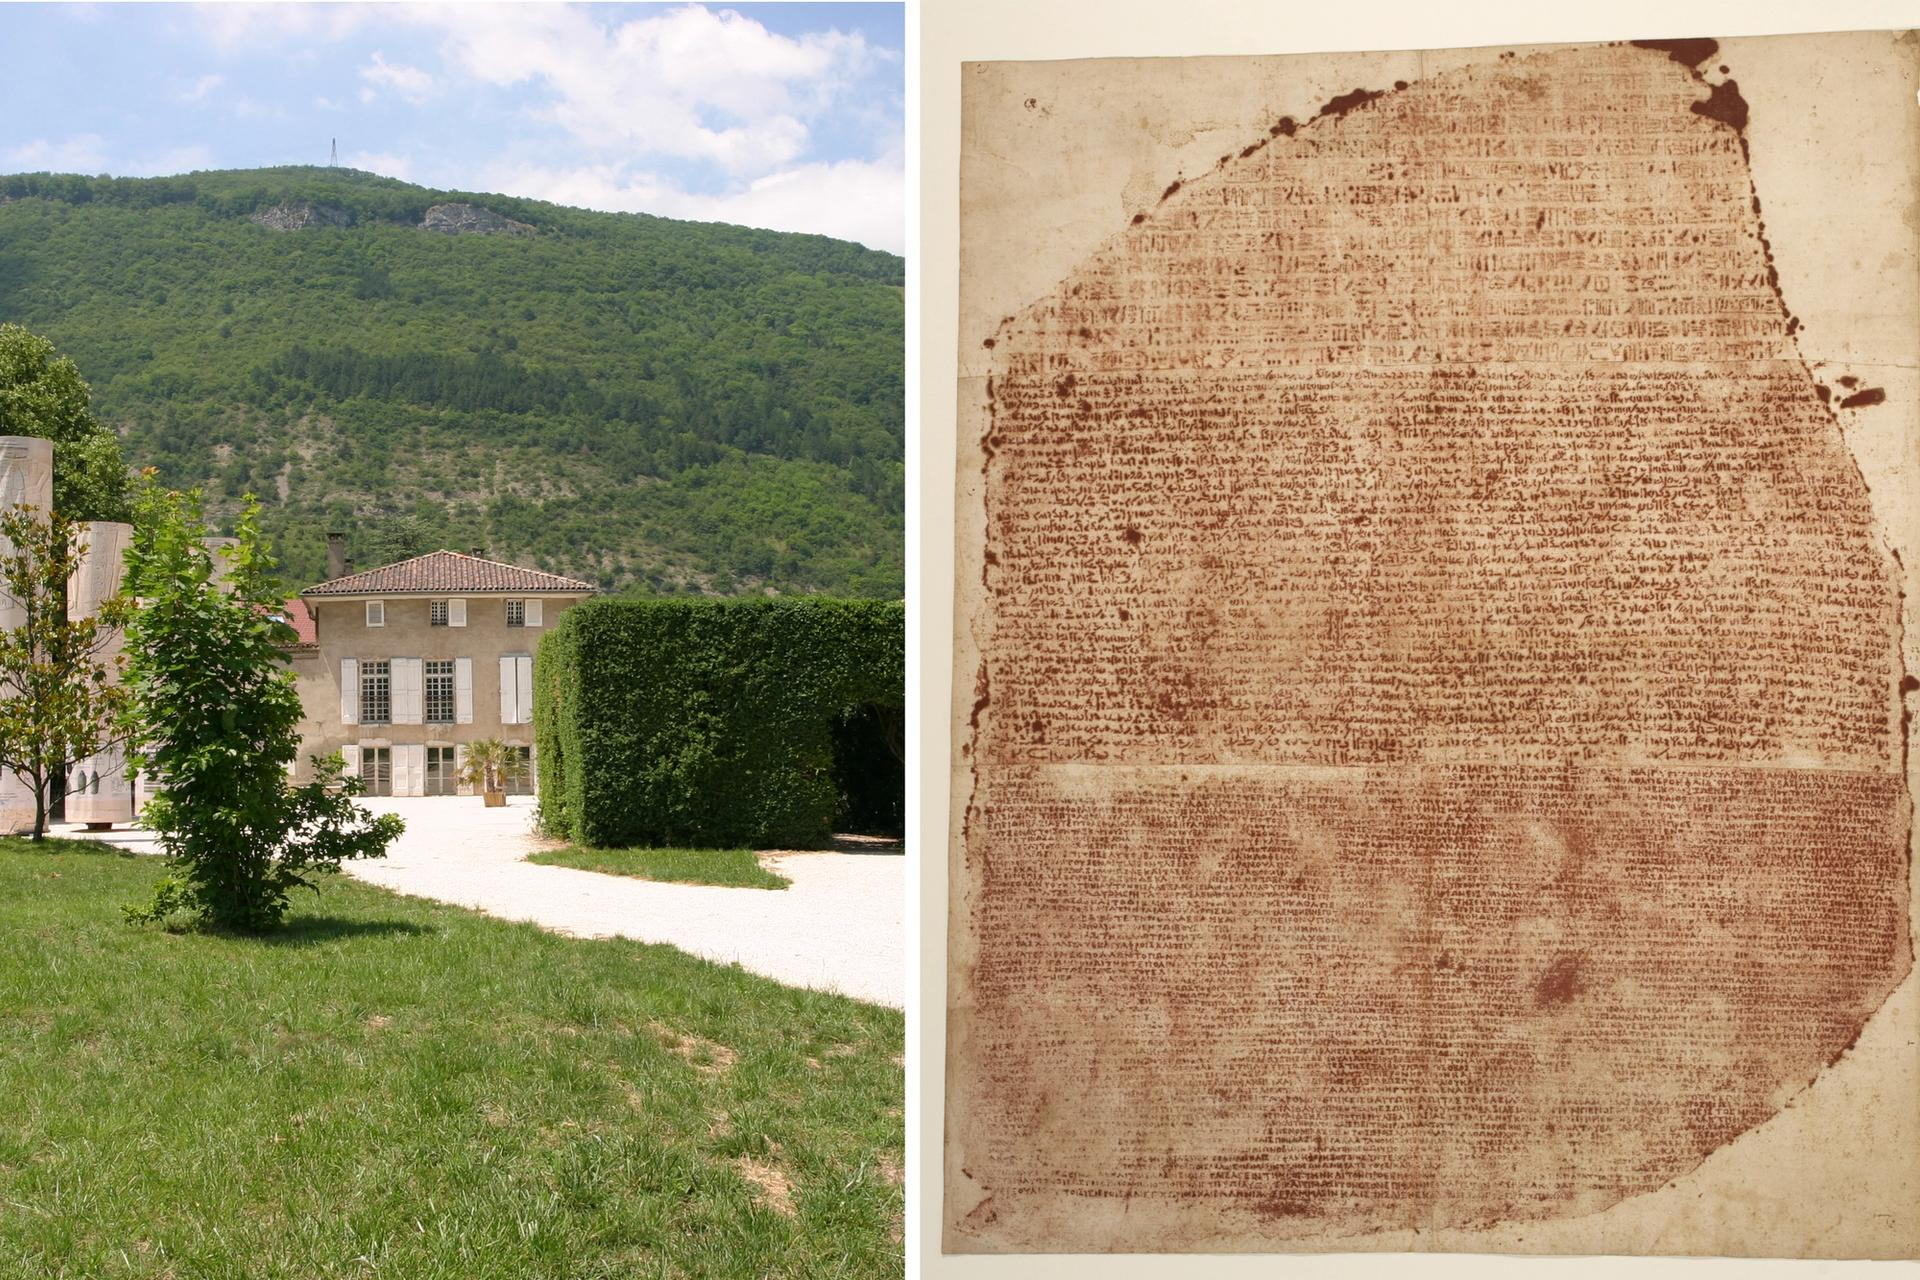 Left: Musée Champollion in Vif; right: a print of the Rosetta Stone (early 19th century) from the museum's collection Photos: © Département de l'Isère / Musée Champollion